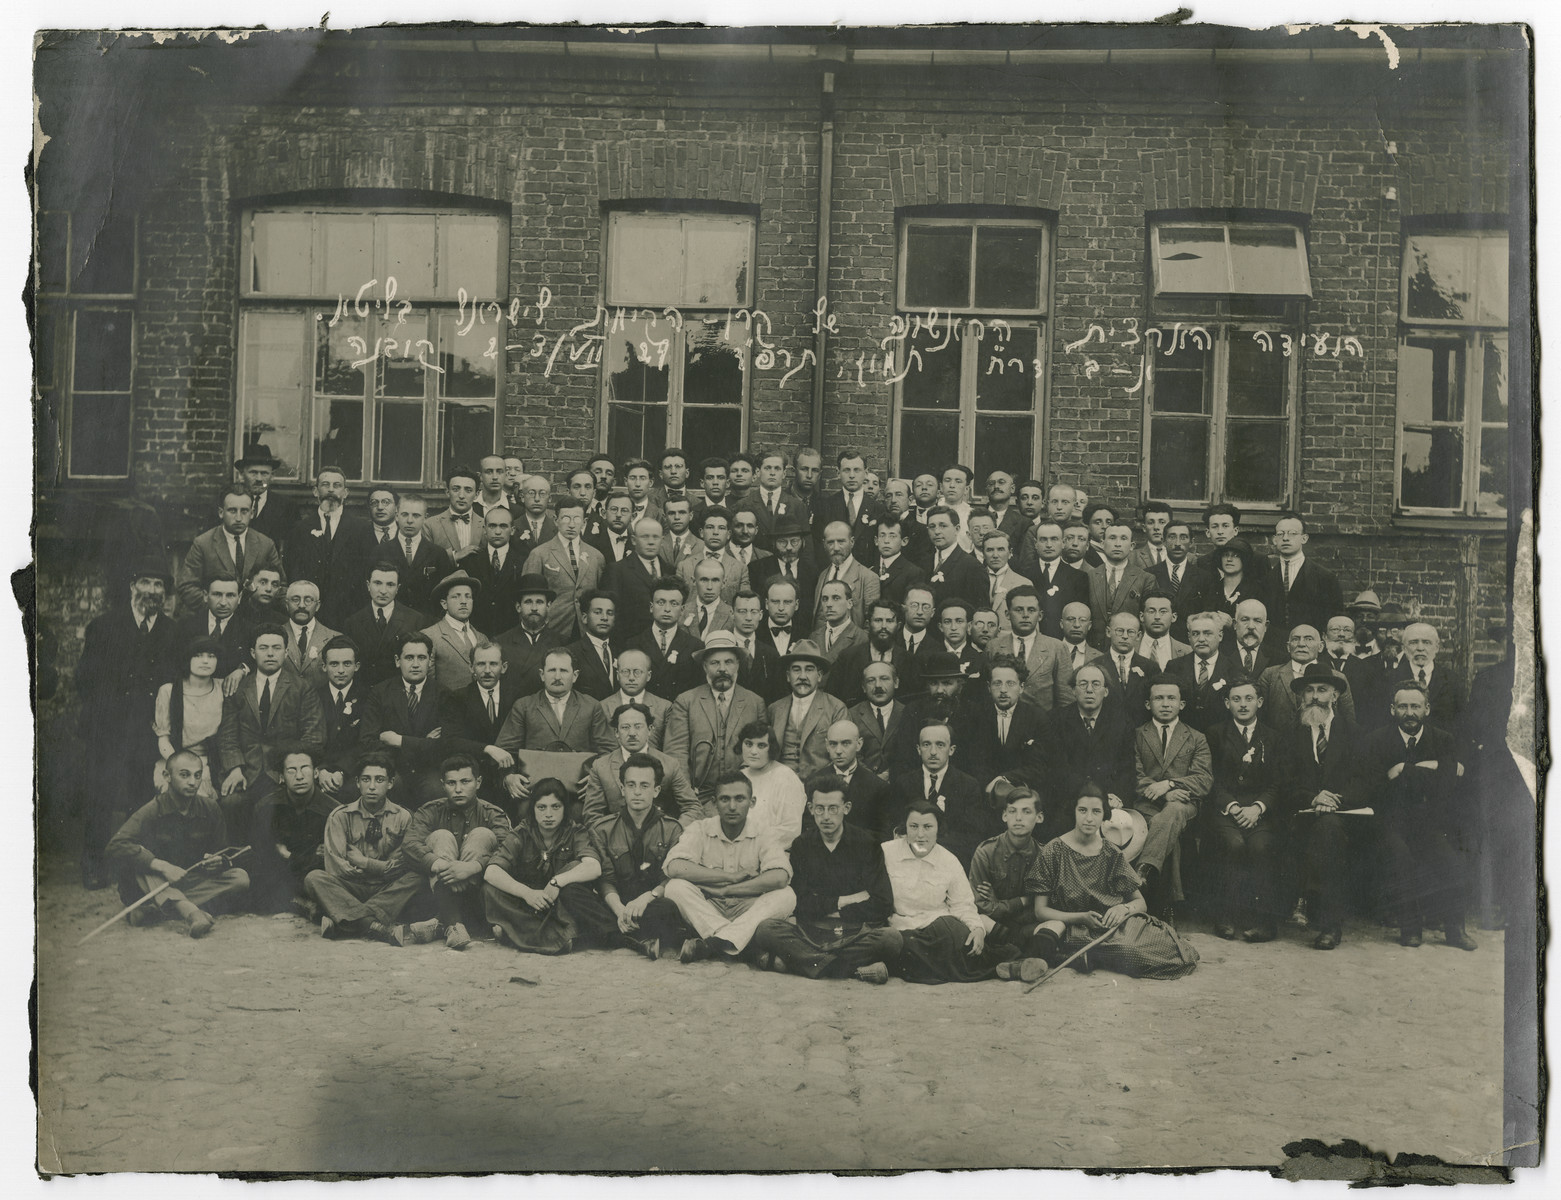 Group portrait of the committee for Keren Kayemet (Jewish National Fund) in prewar Kovno.  Samuel Gotz is pictured in the second row, fourth from the left.  Ussishkin, the head of the Keren Kayement  is (probably) in the center with the white hat